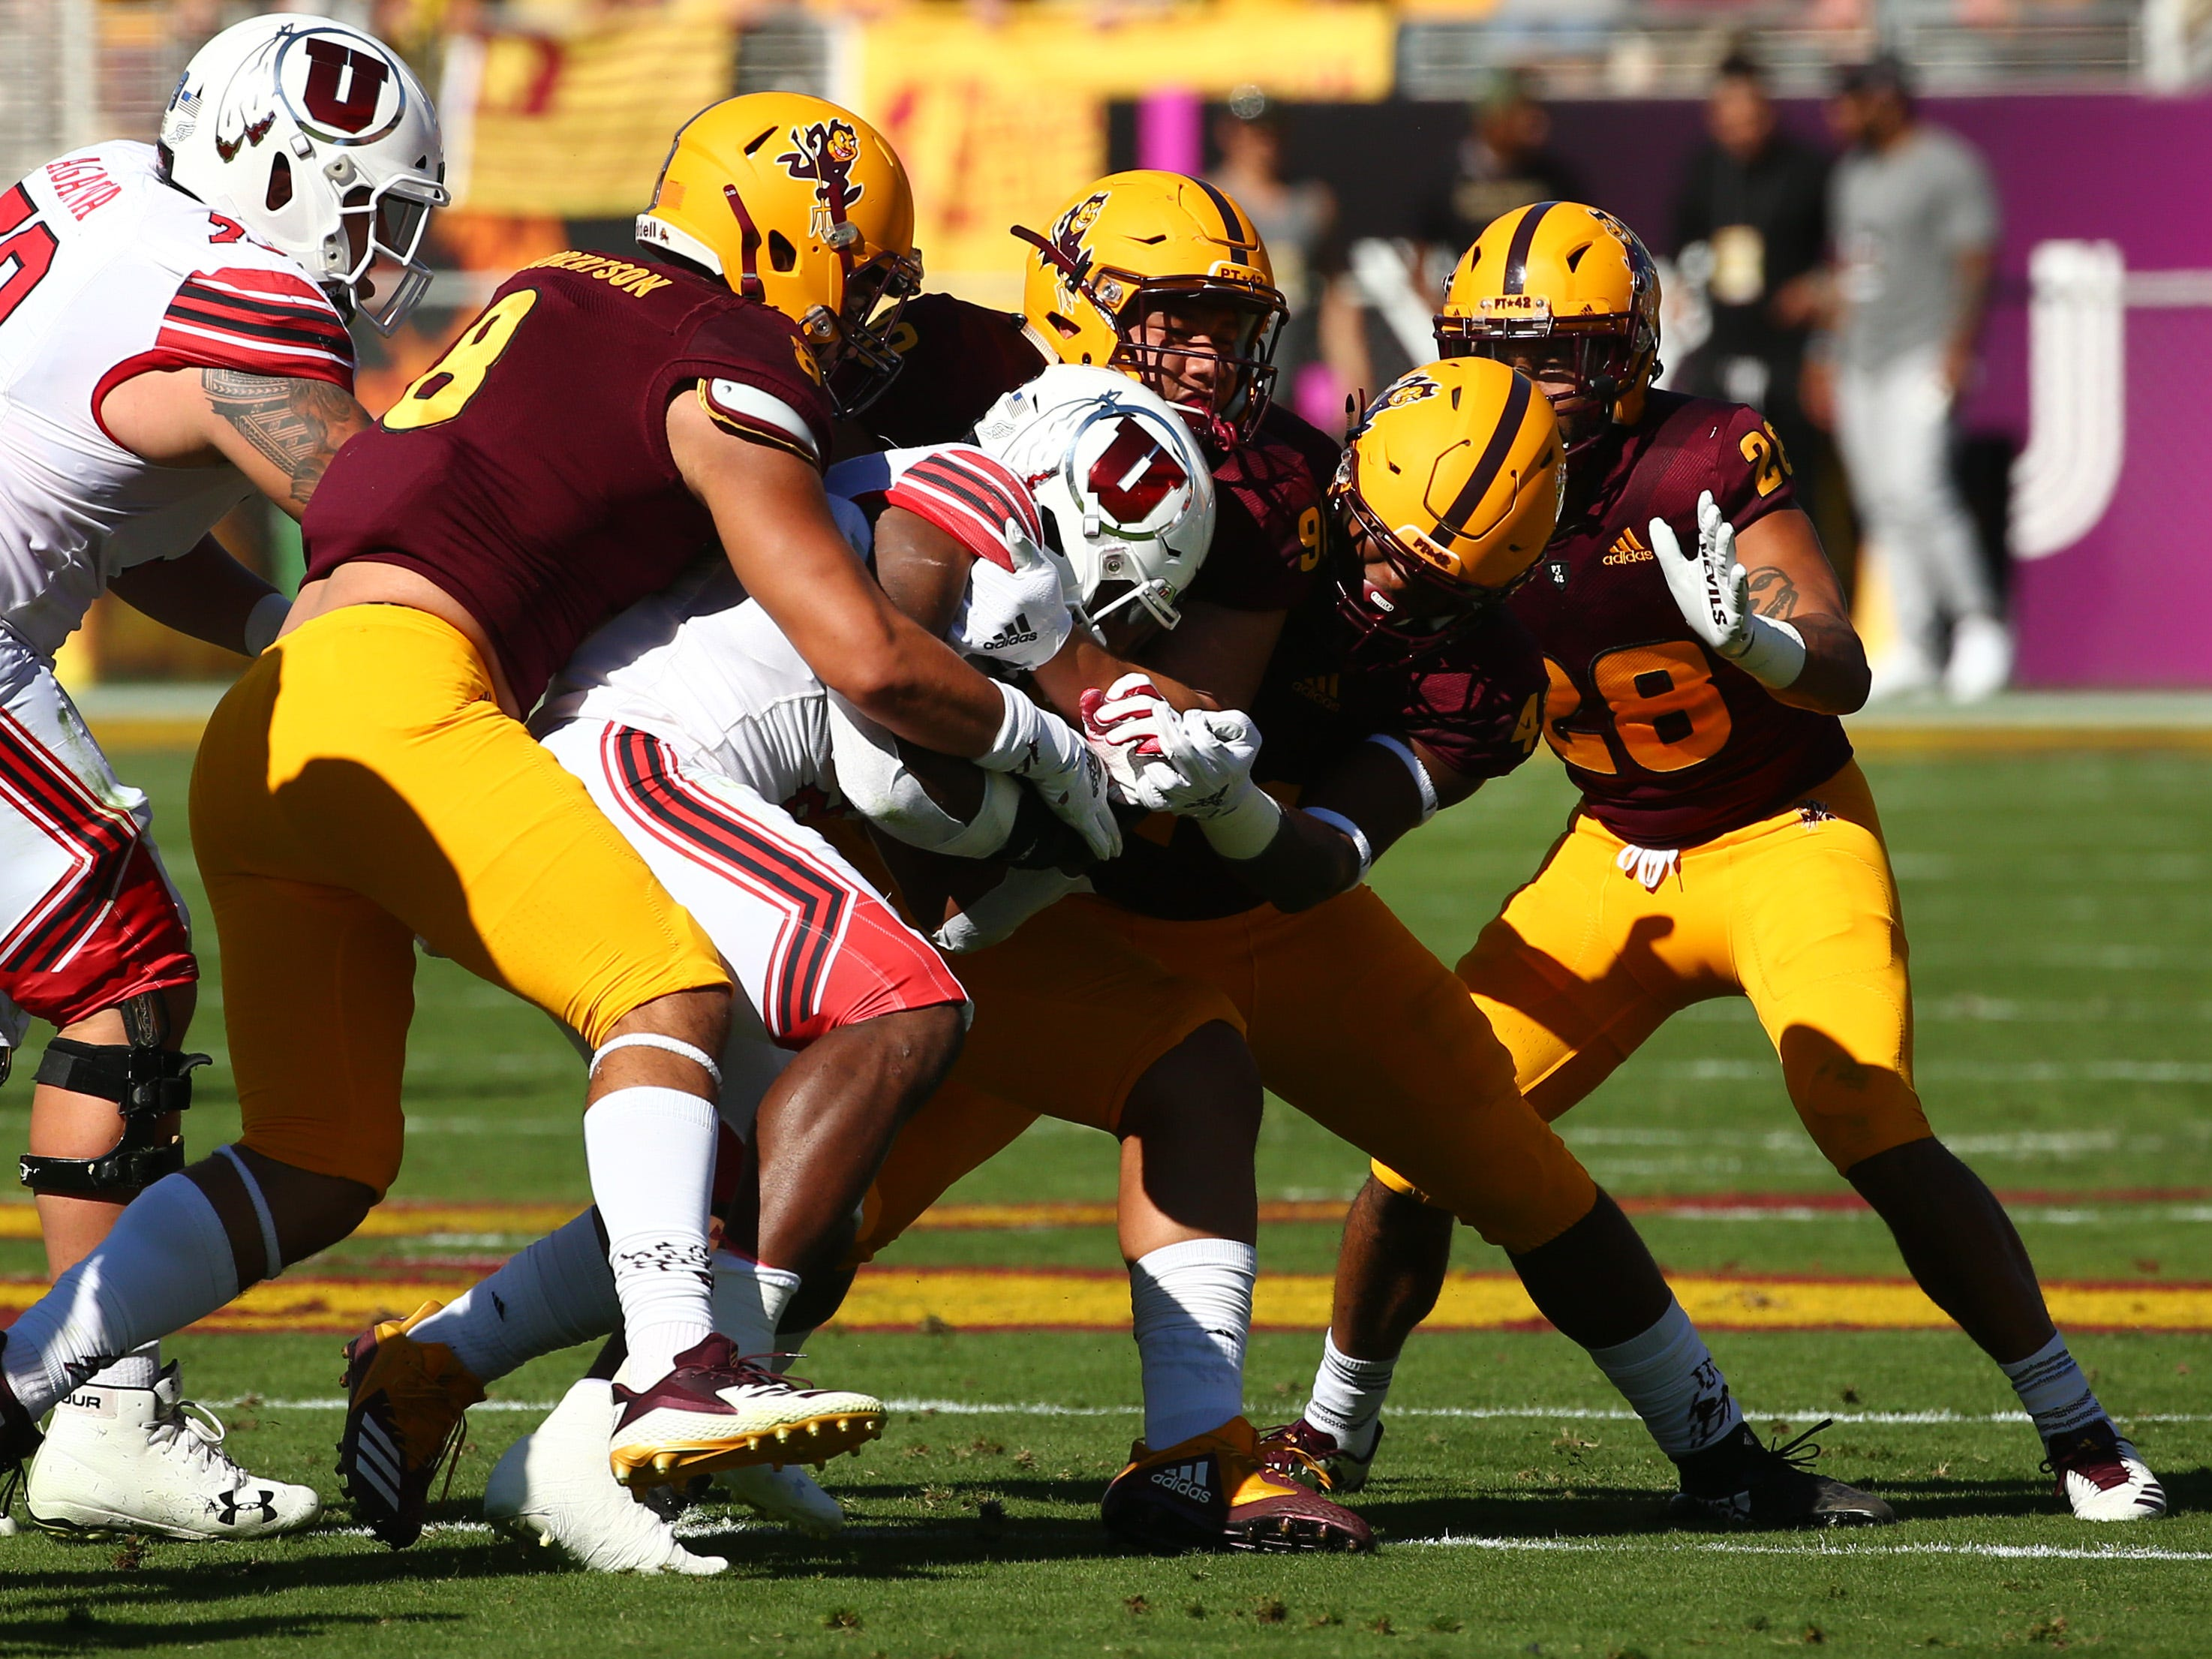 Arizona State defense tackles Utah's Zack Moss in the first half on Nov. 3 at Sun Devil Stadium.